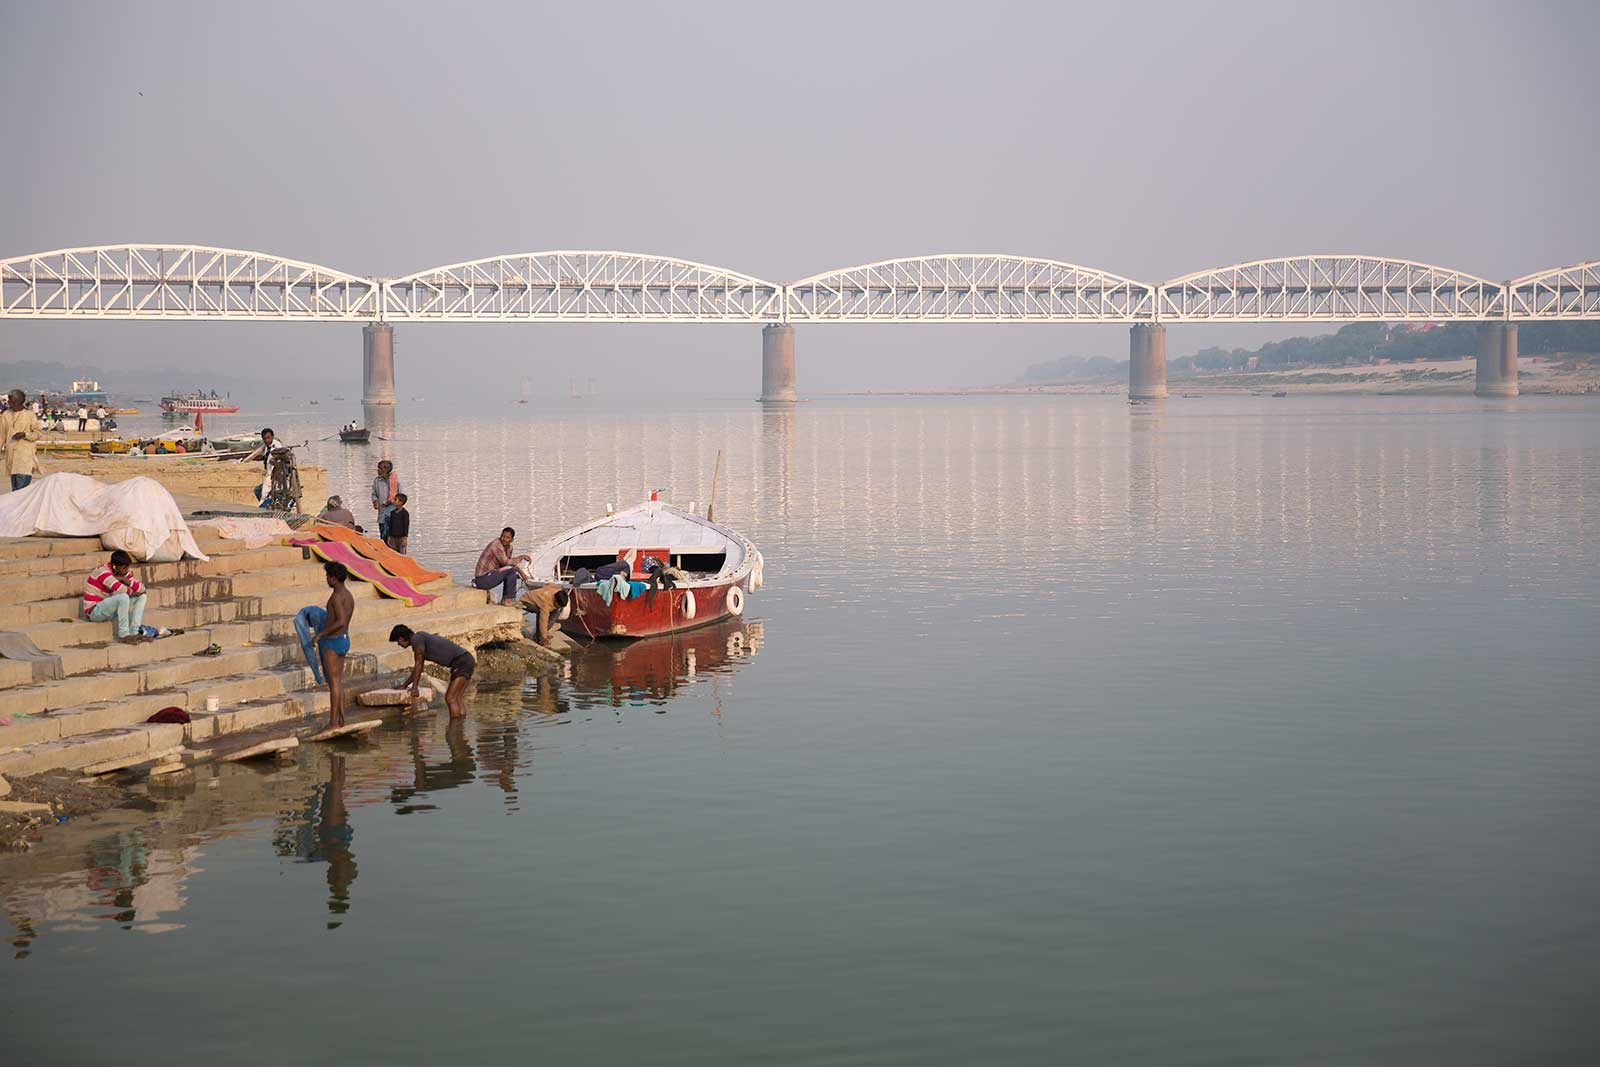 Malviya Bridge is not only an impressive sight, but also an important lifeline, since it's also the way to Mughal Sarai train station.